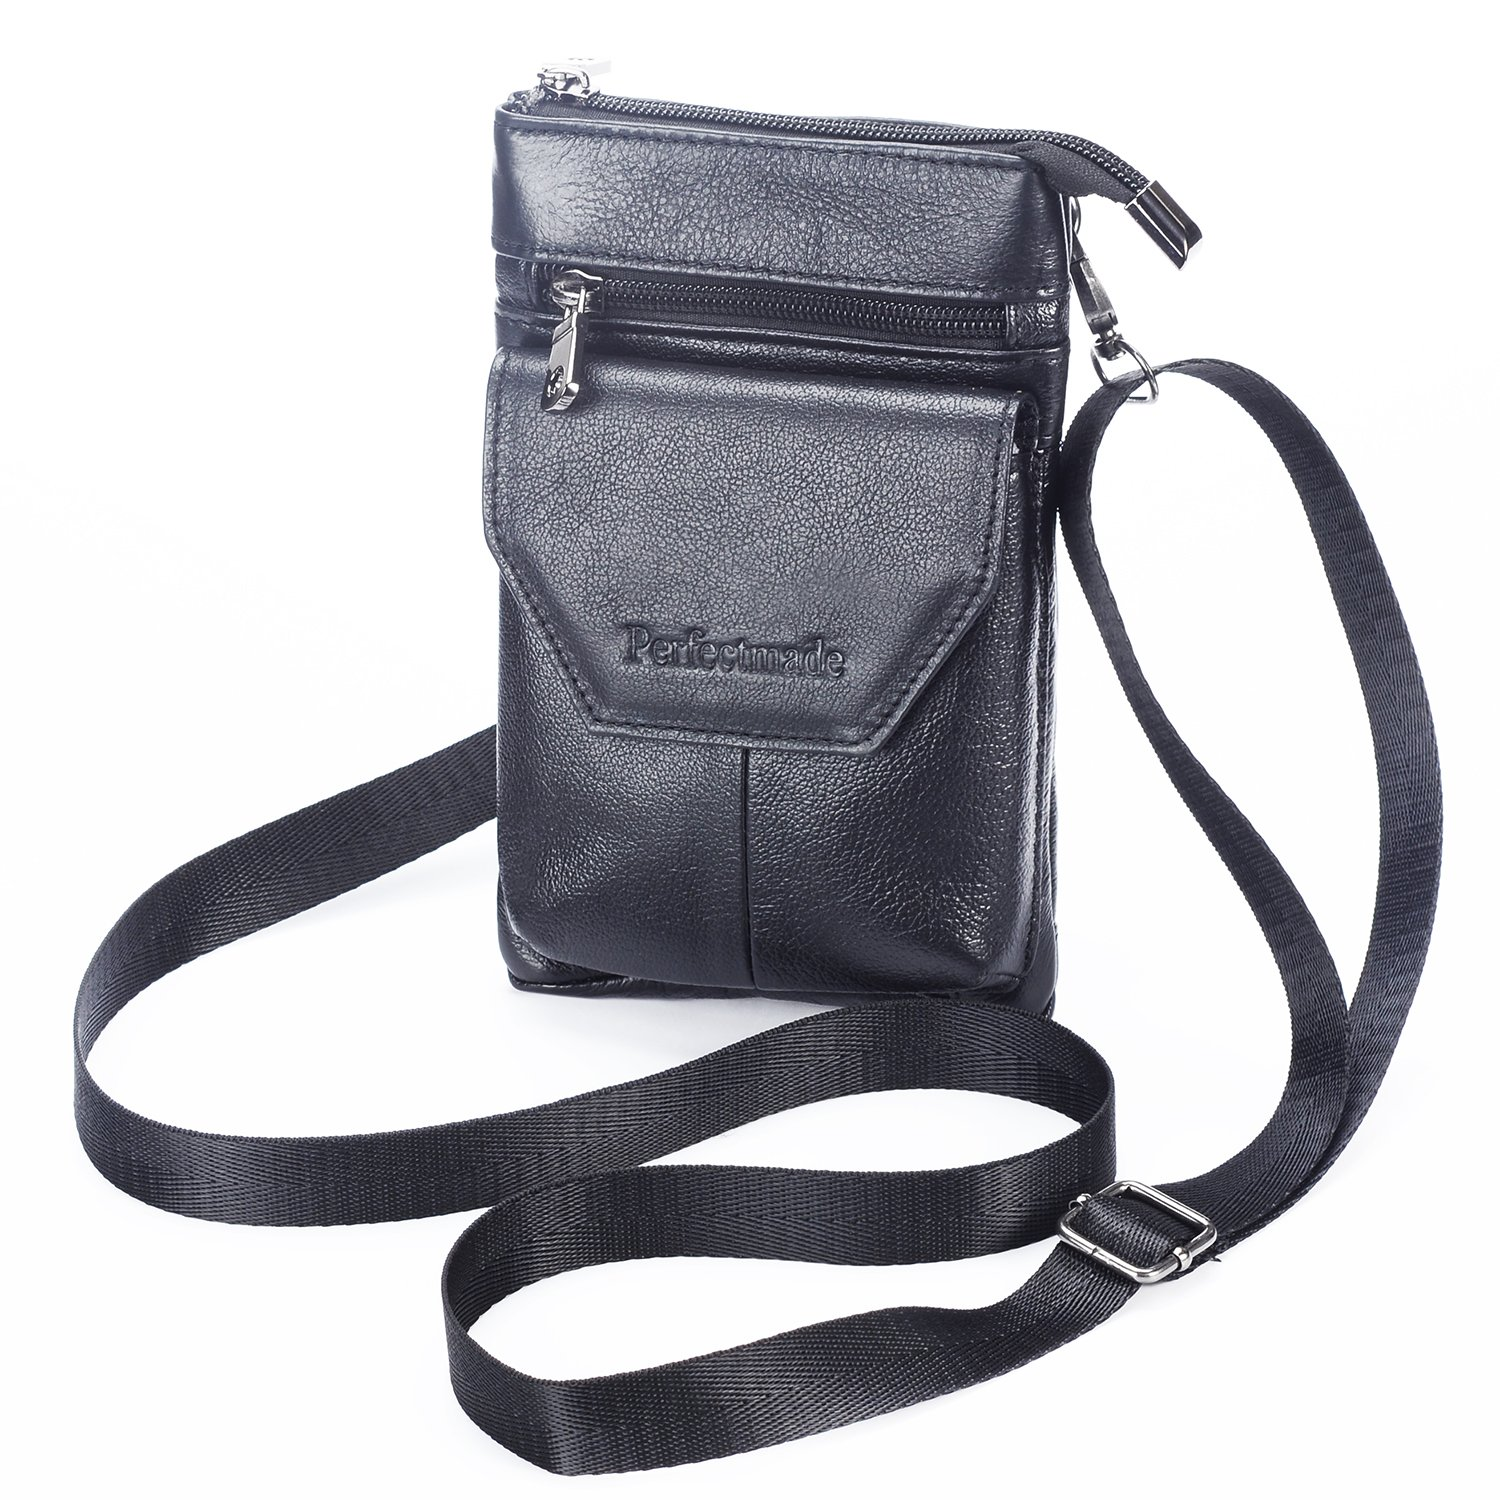 Cell Phone Belt Pouch Holder Caseleather Small Crossbody